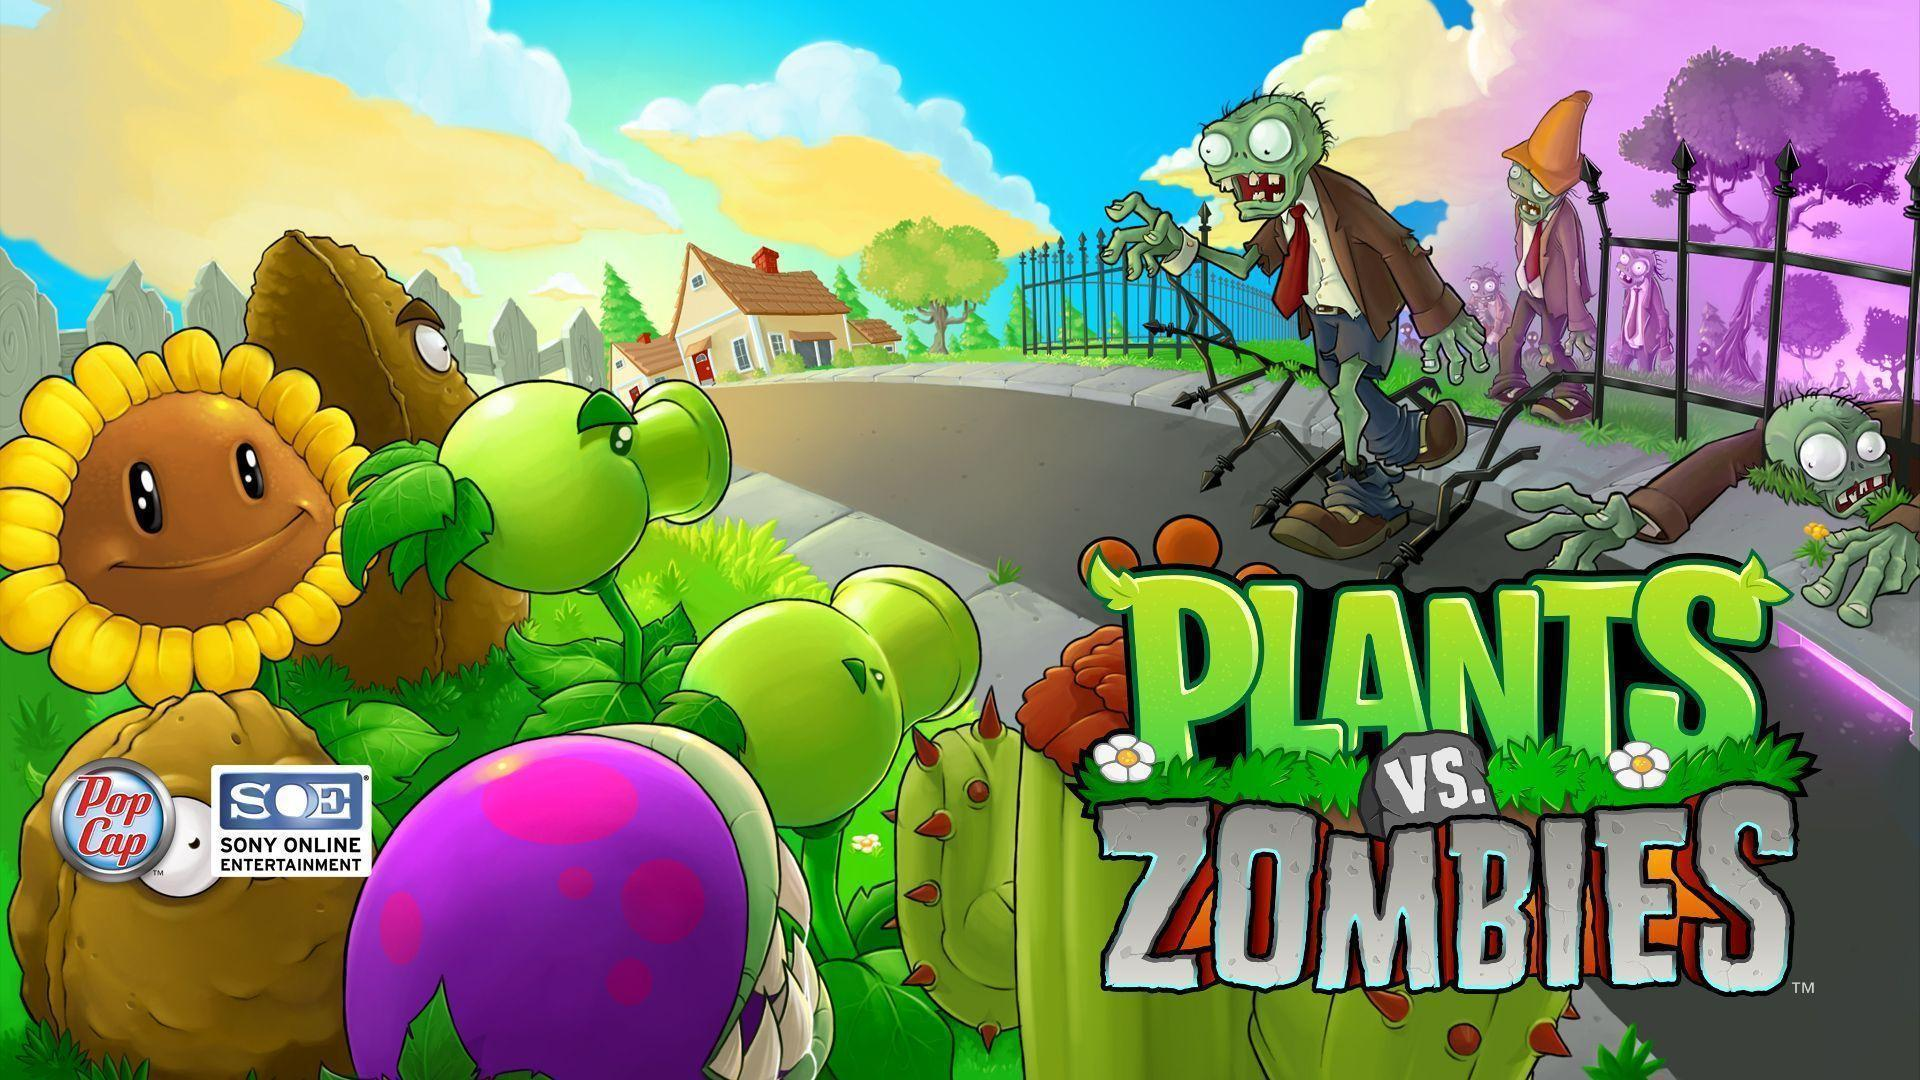 Plants Vs Zombies Playstation 3 Goodies -